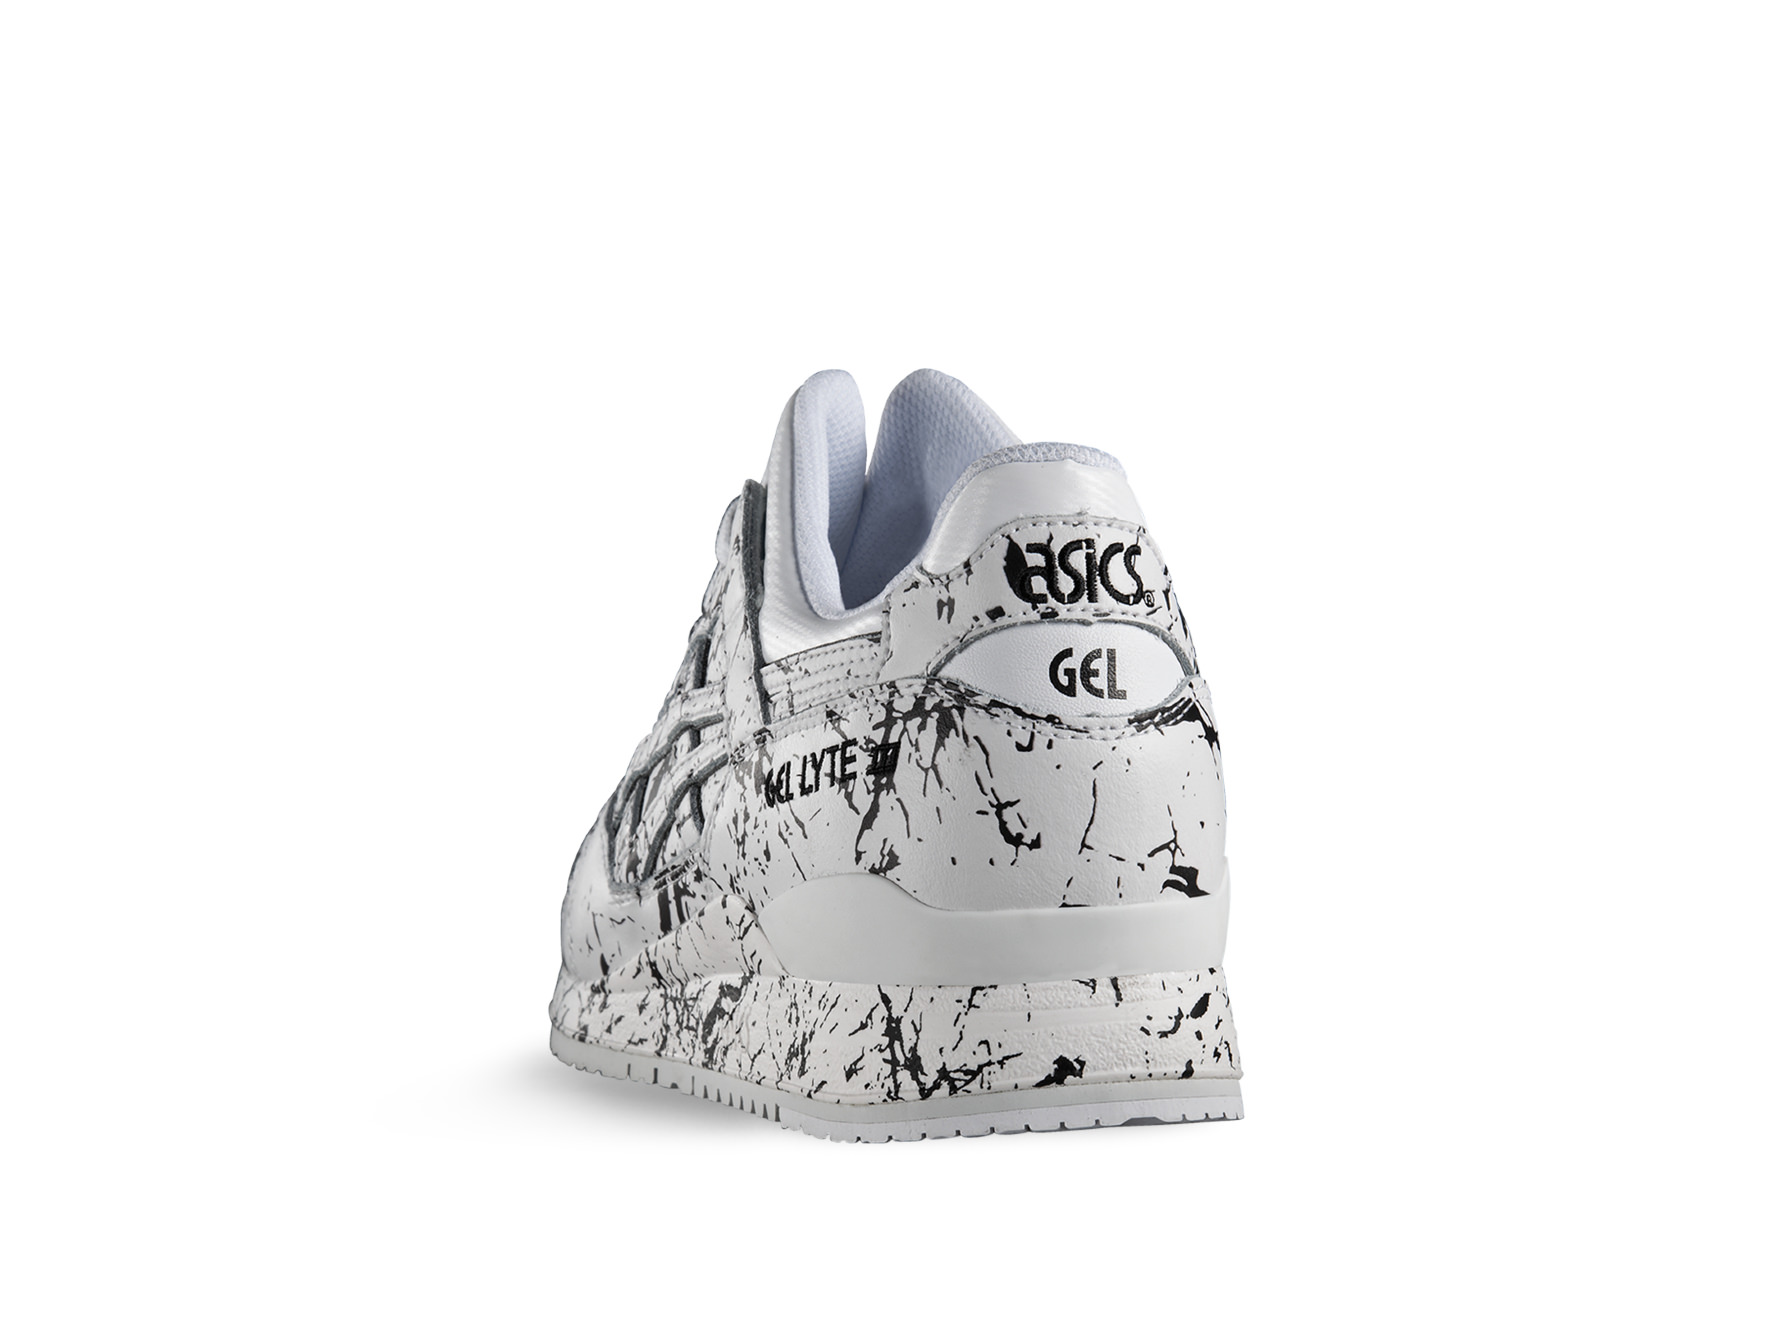 the best attitude 4dc44 b2e9a asics-Tiger-Marble-Pack-GEL-LYTE-III-Marmor-Weiss-White-back LR.jpg